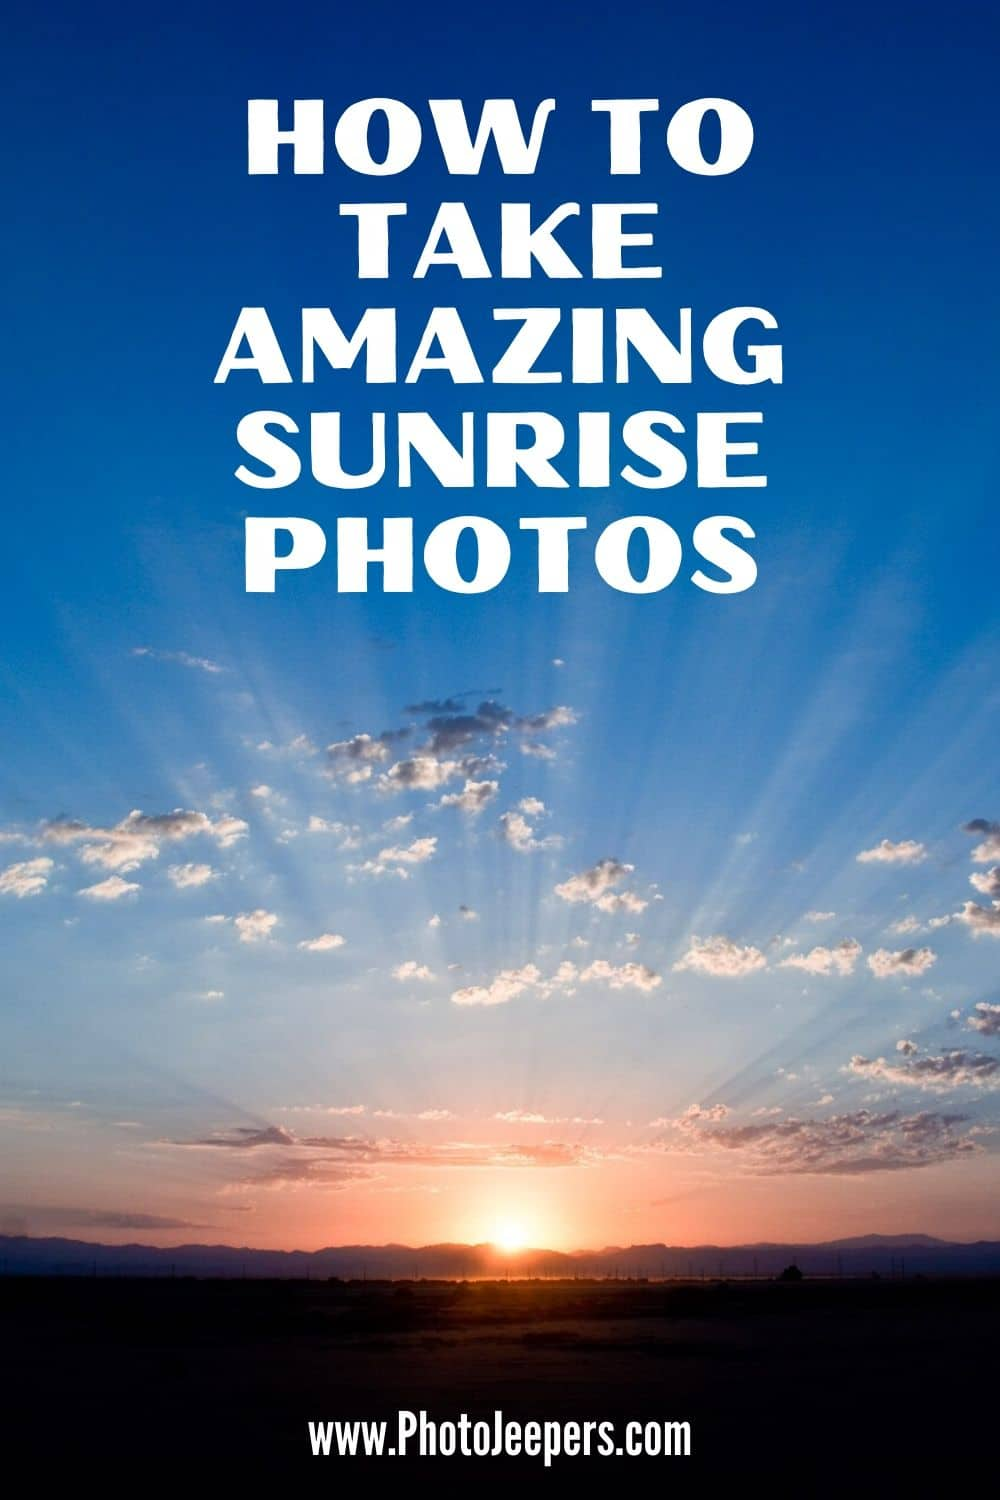 If you're looking to improve your sunrise photography, use this guide that includes tips about location, composition, timing and more! #photography #landscapephotography #sunrise #photojeepers